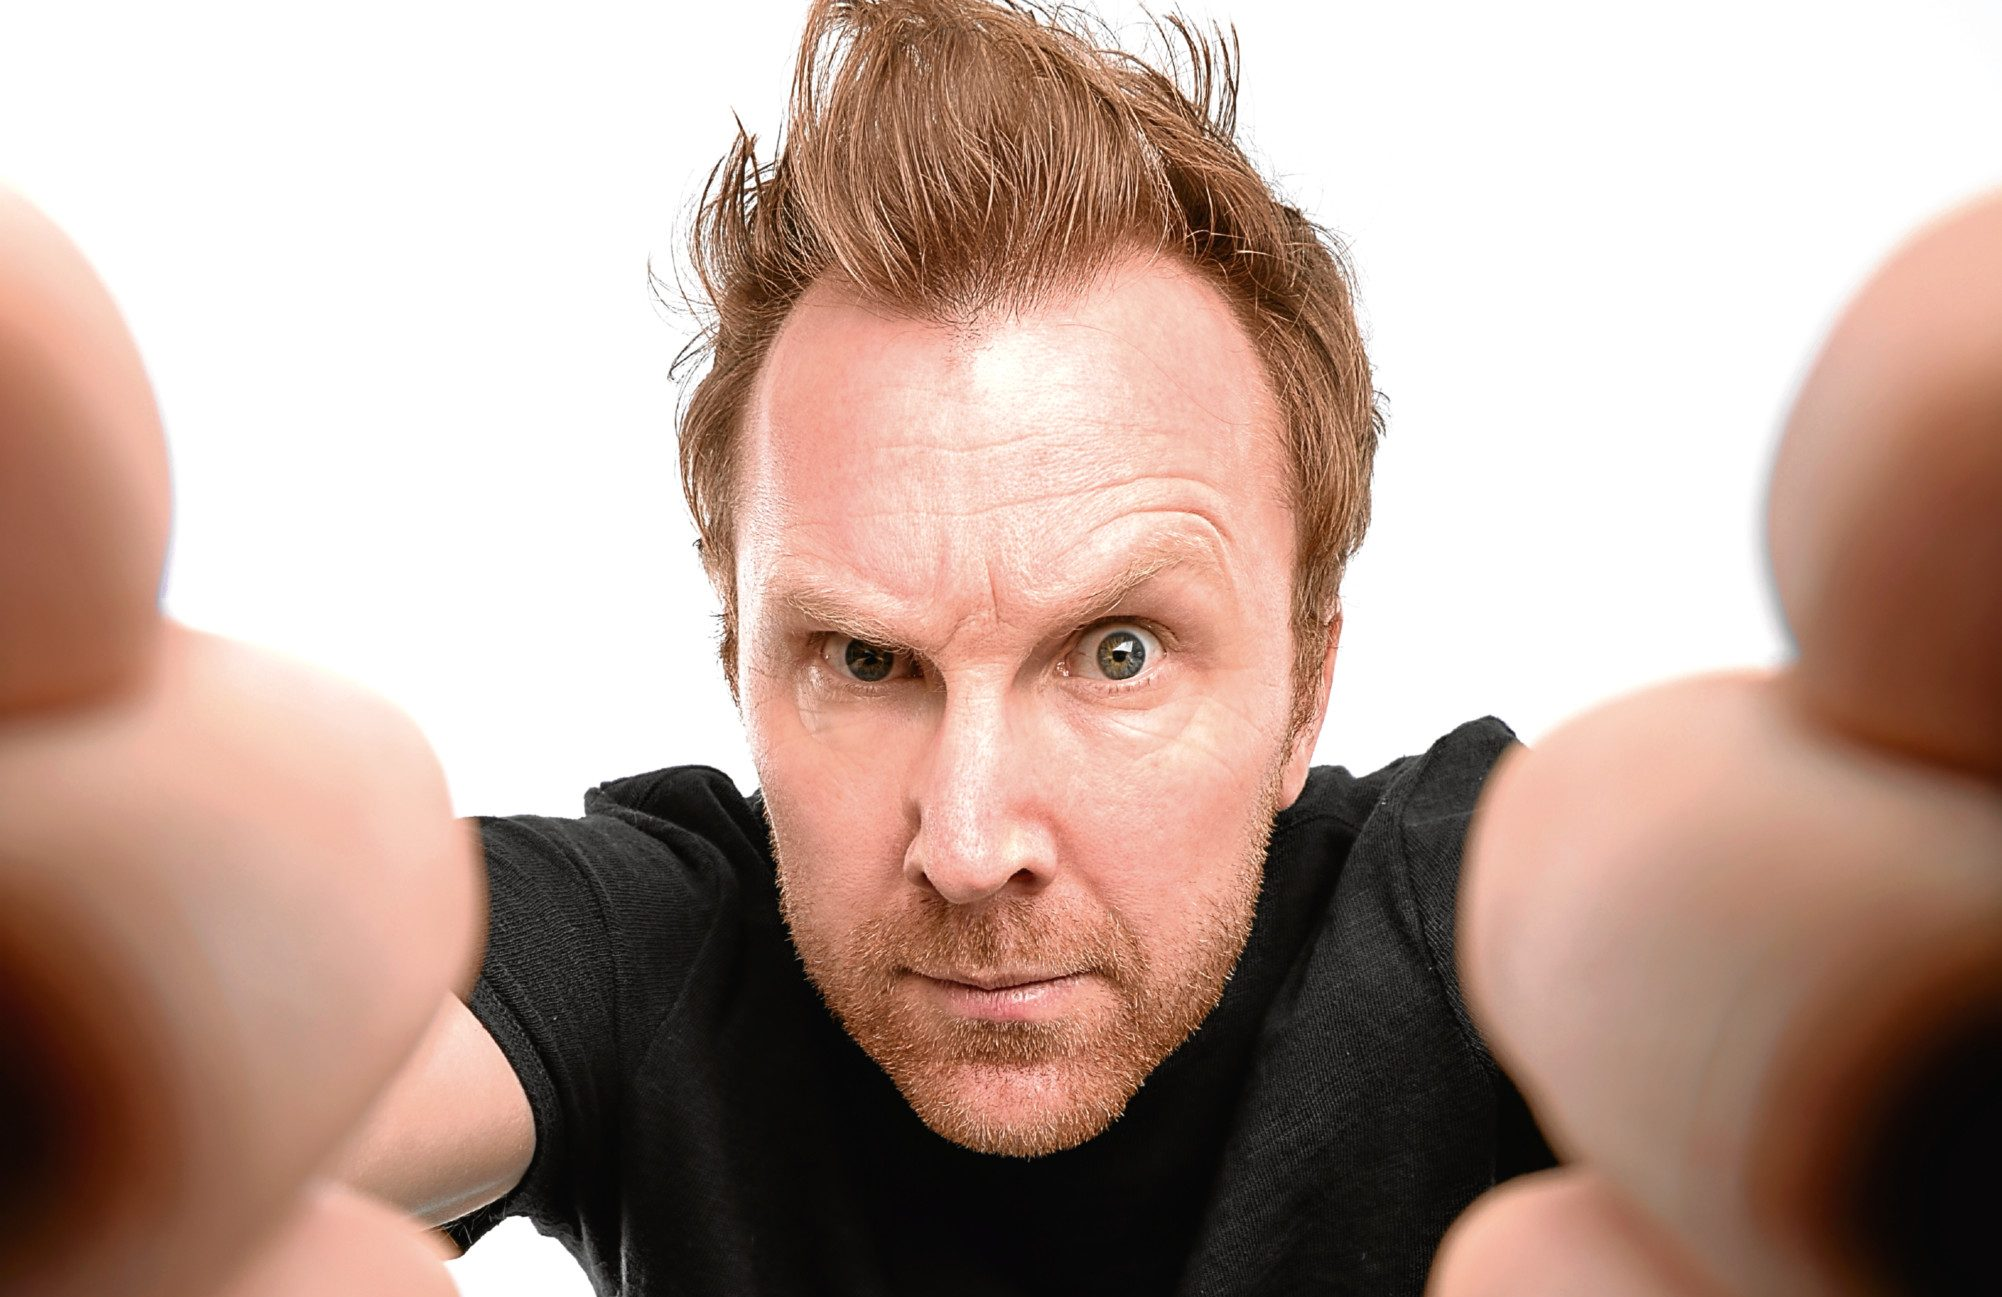 Top Irish stand-up Jason Byrne, one of the best in the business, is headlining tomorrow night's 'Live At The Civic' at Brierley Hill Civic Hall.